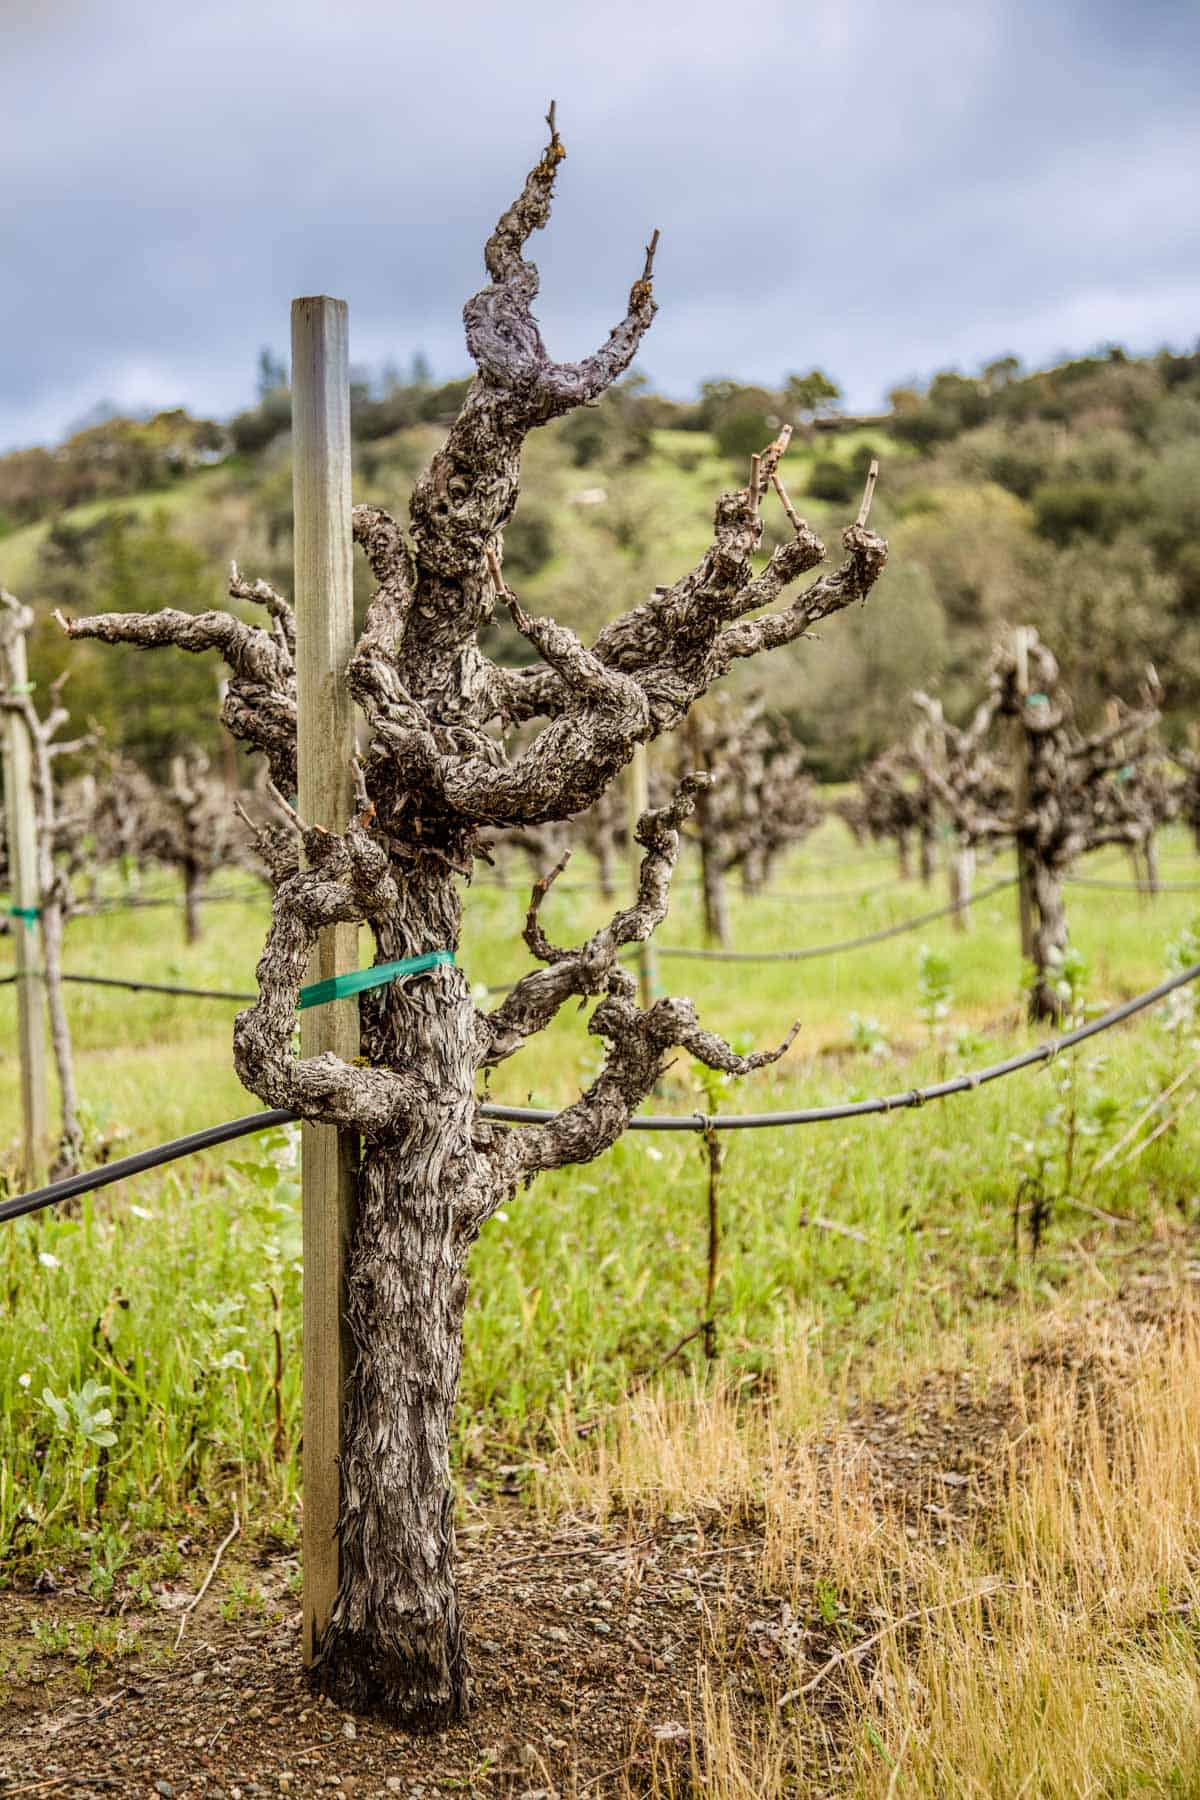 Old knarly zinfandel vines in a vineyard